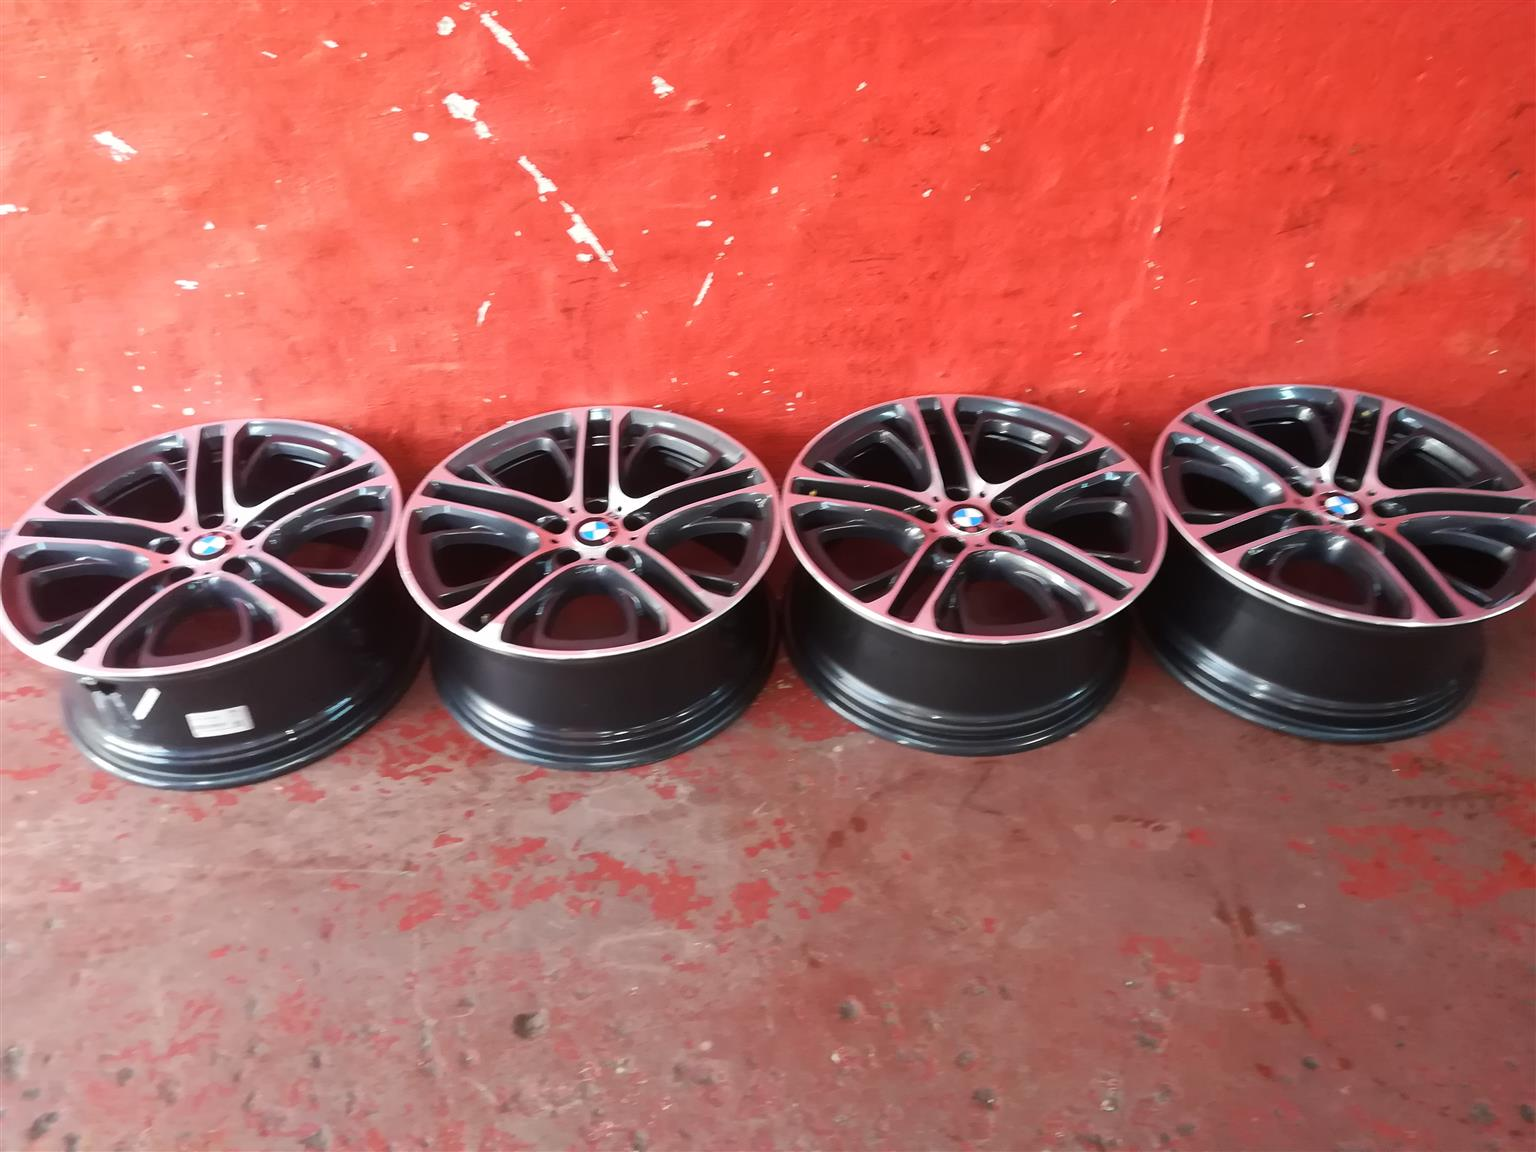 BMW MAG RIMS FOR SALE. 20INCH